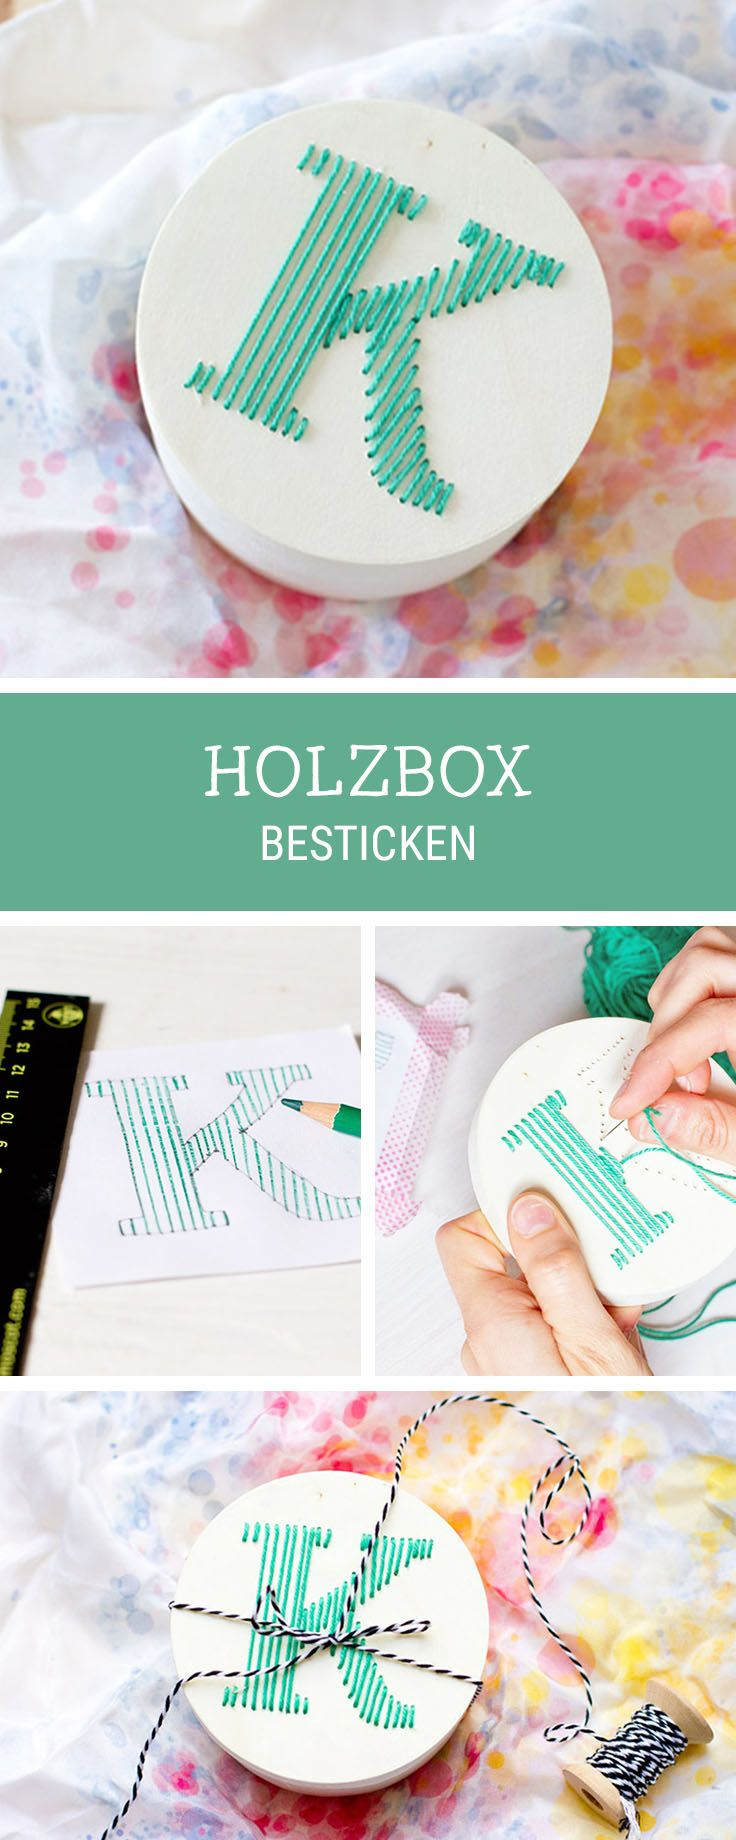 DIY-Anleitung für bestickte Holzboxen, Stickanleitung für Buchstaben / diy inspiration for wooden boxes decorated with stitched letters, embroidery inspiration via DaWanda.com